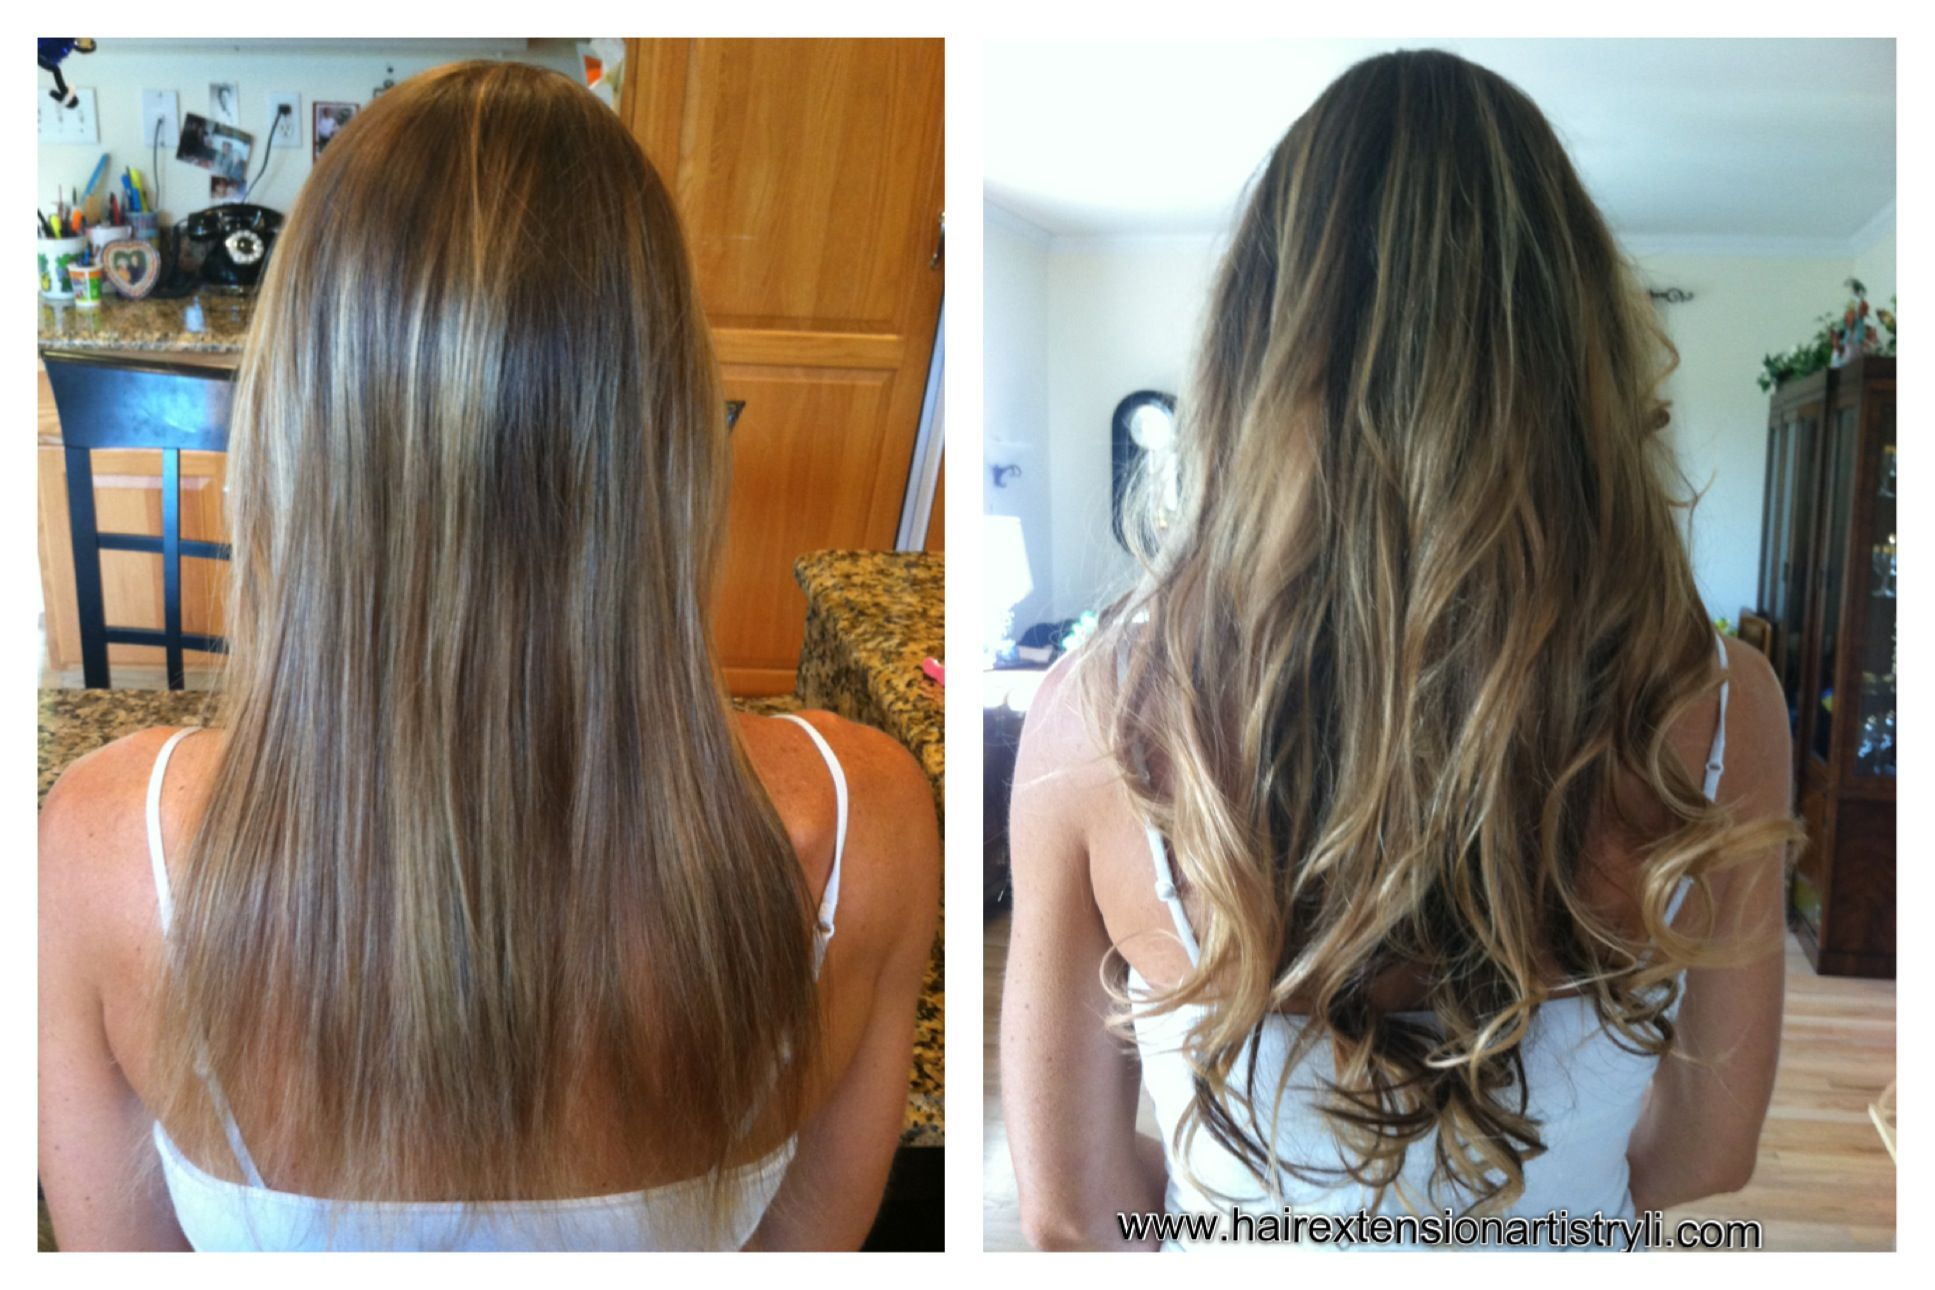 Hollywood Makeover With Ombre Hair Extensions Long Island Hair